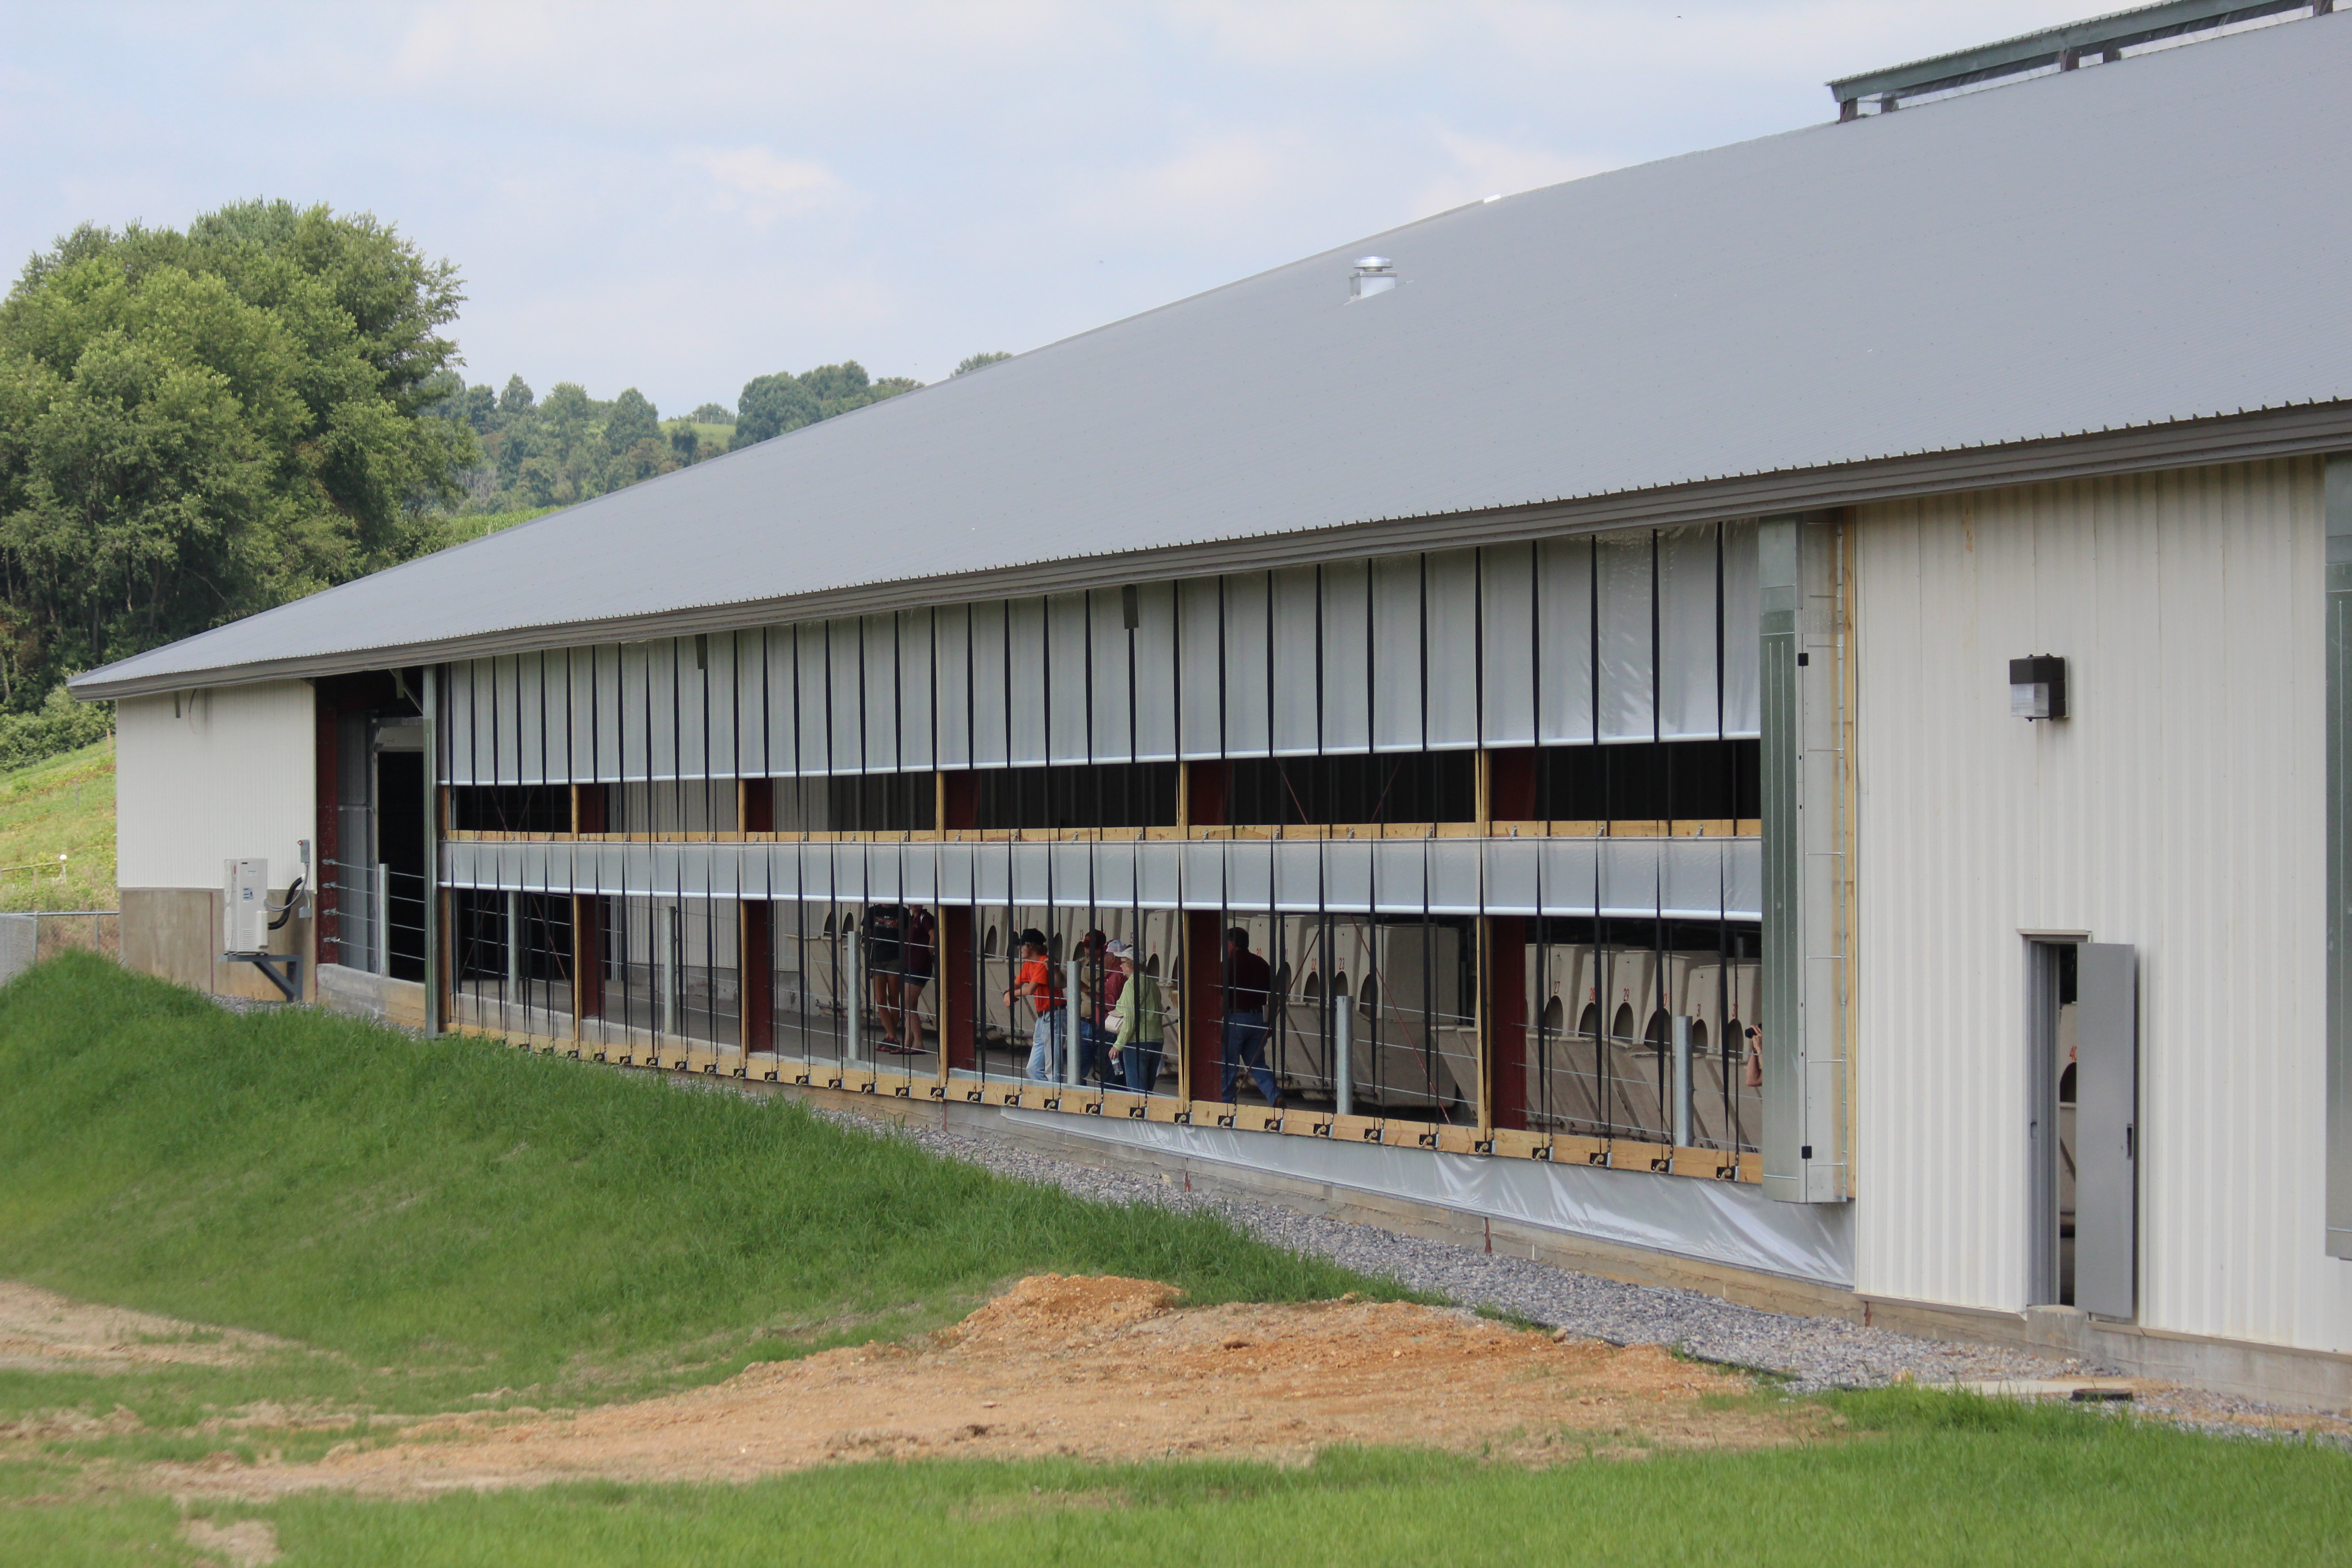 People tour a dairy barn lined with troughs.